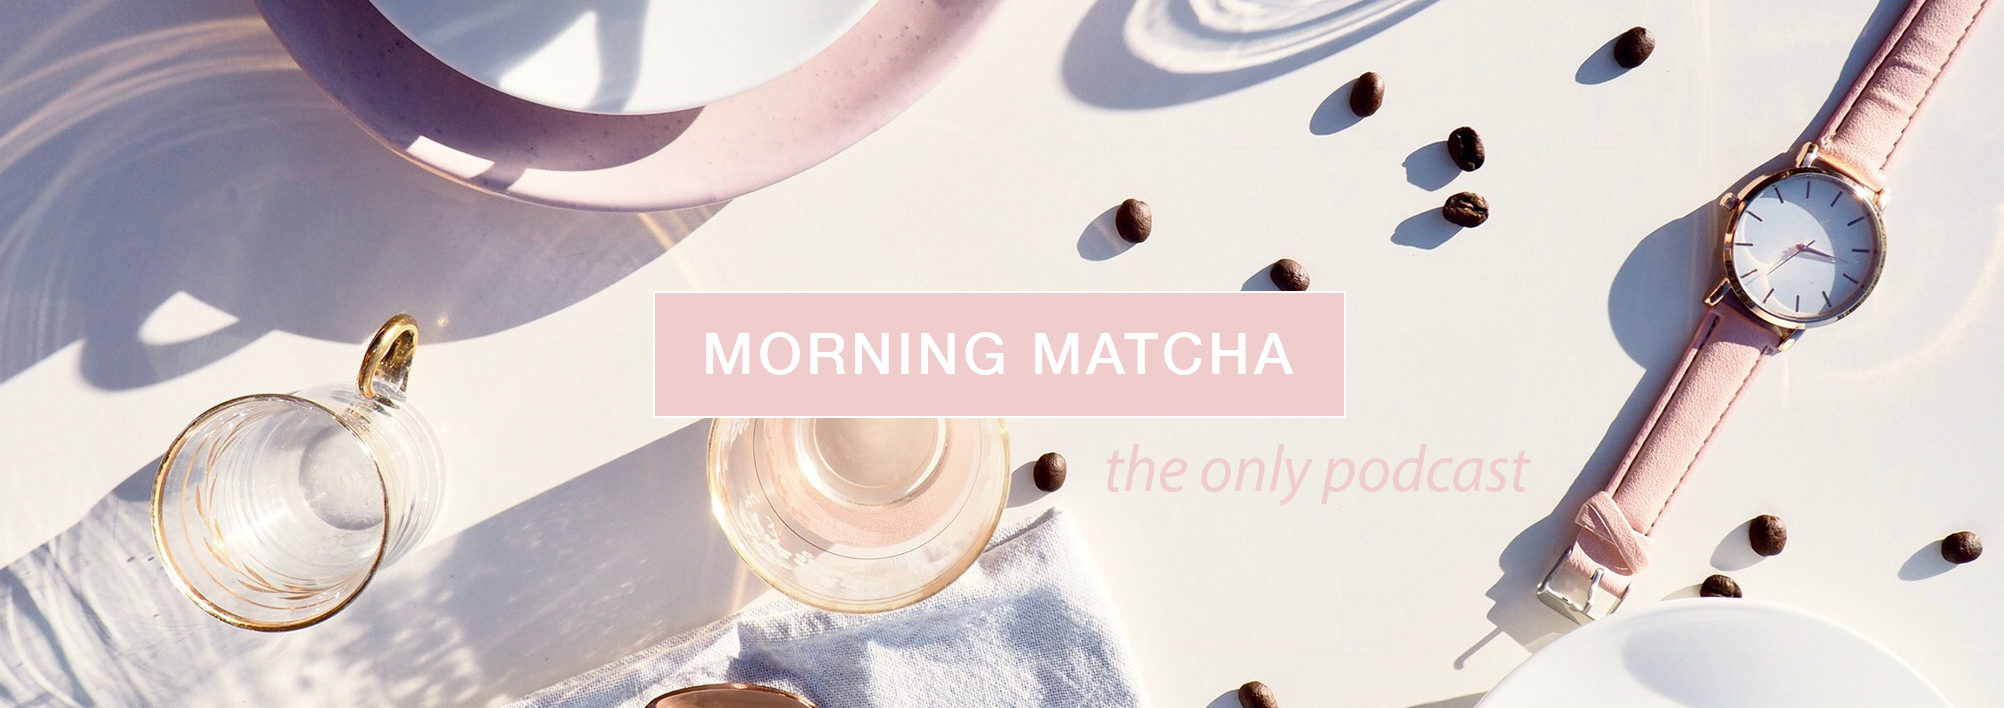 Morning Matcha Ad 3.jpg